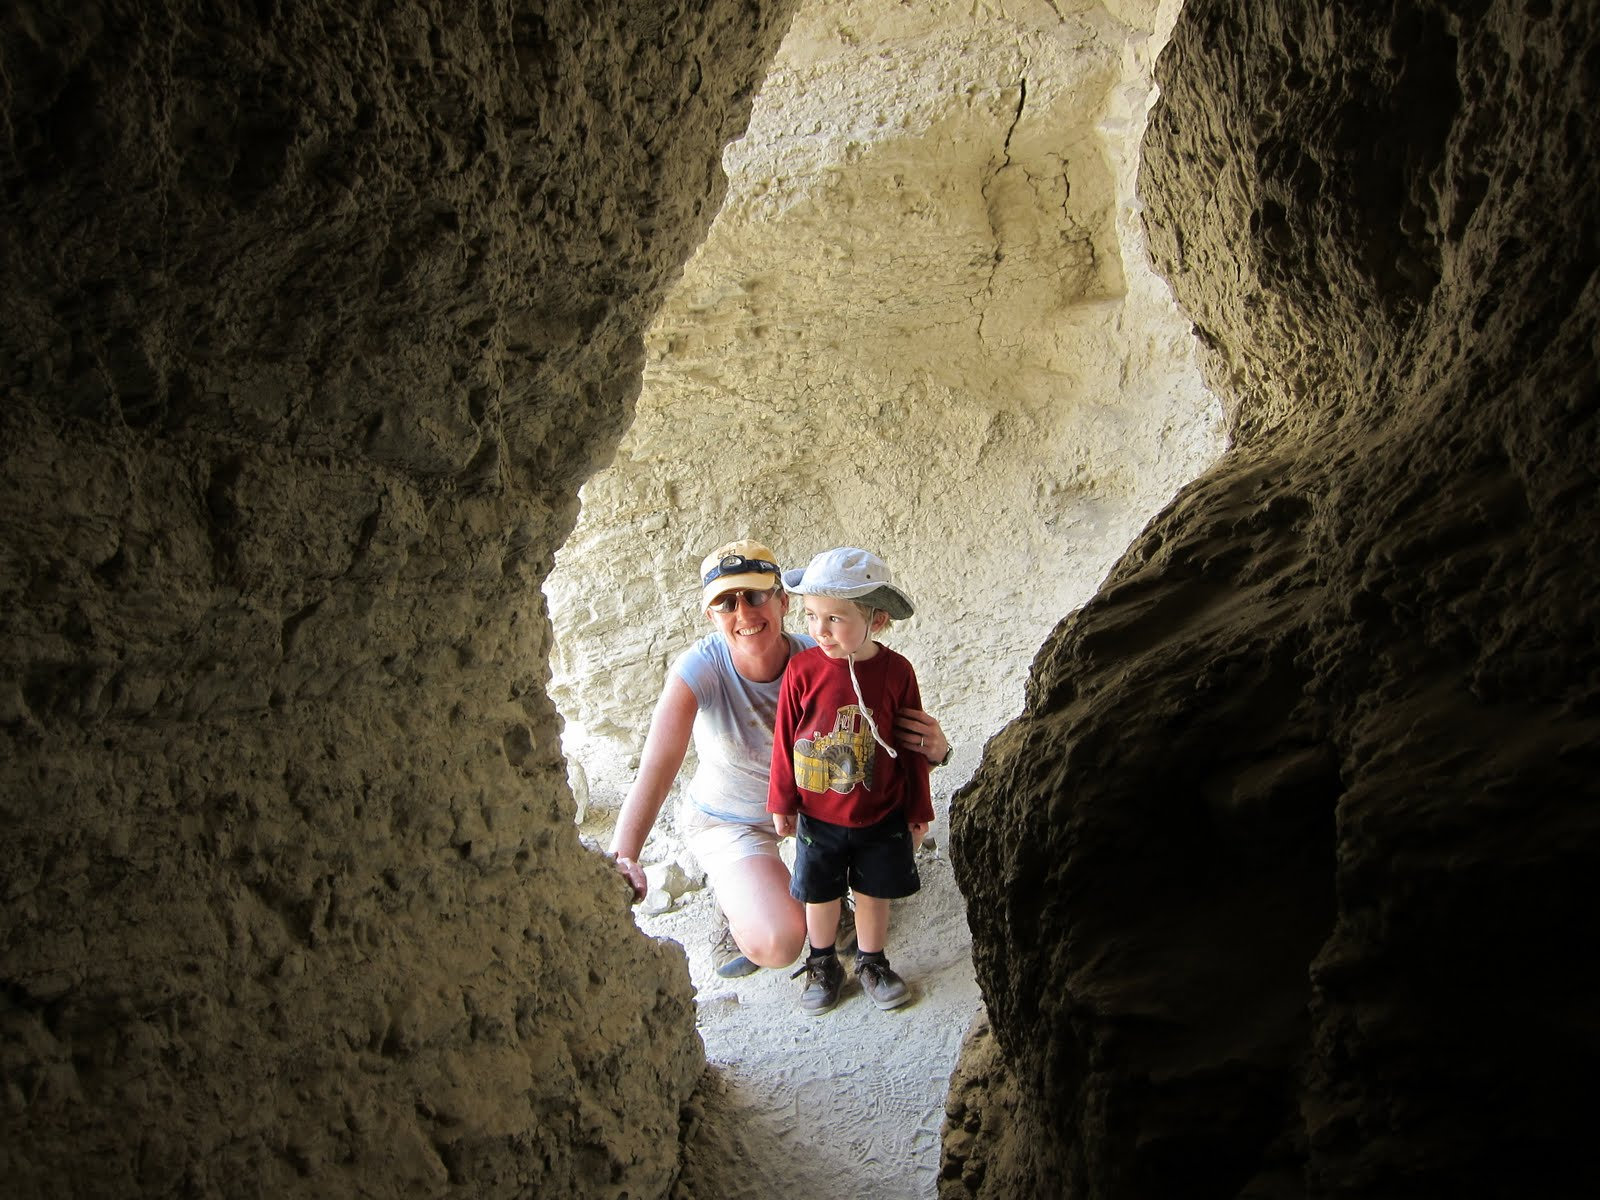 Mary and Austin at the entrance to Plunge Pool Cave